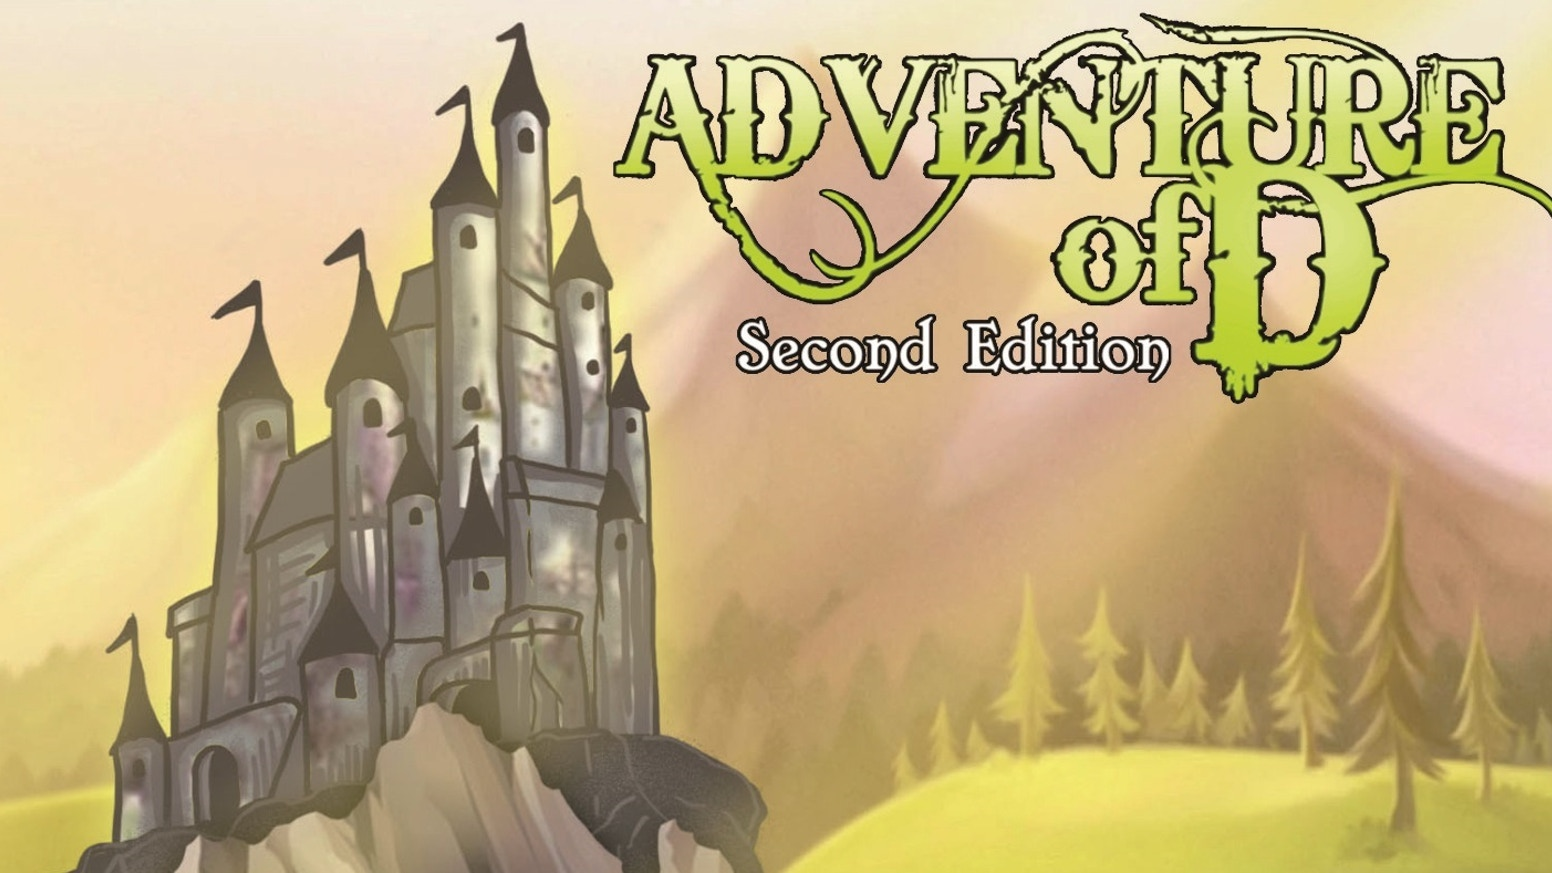 A fantasy adventure game using the diceless Power Card system. A BIG game in a small box!